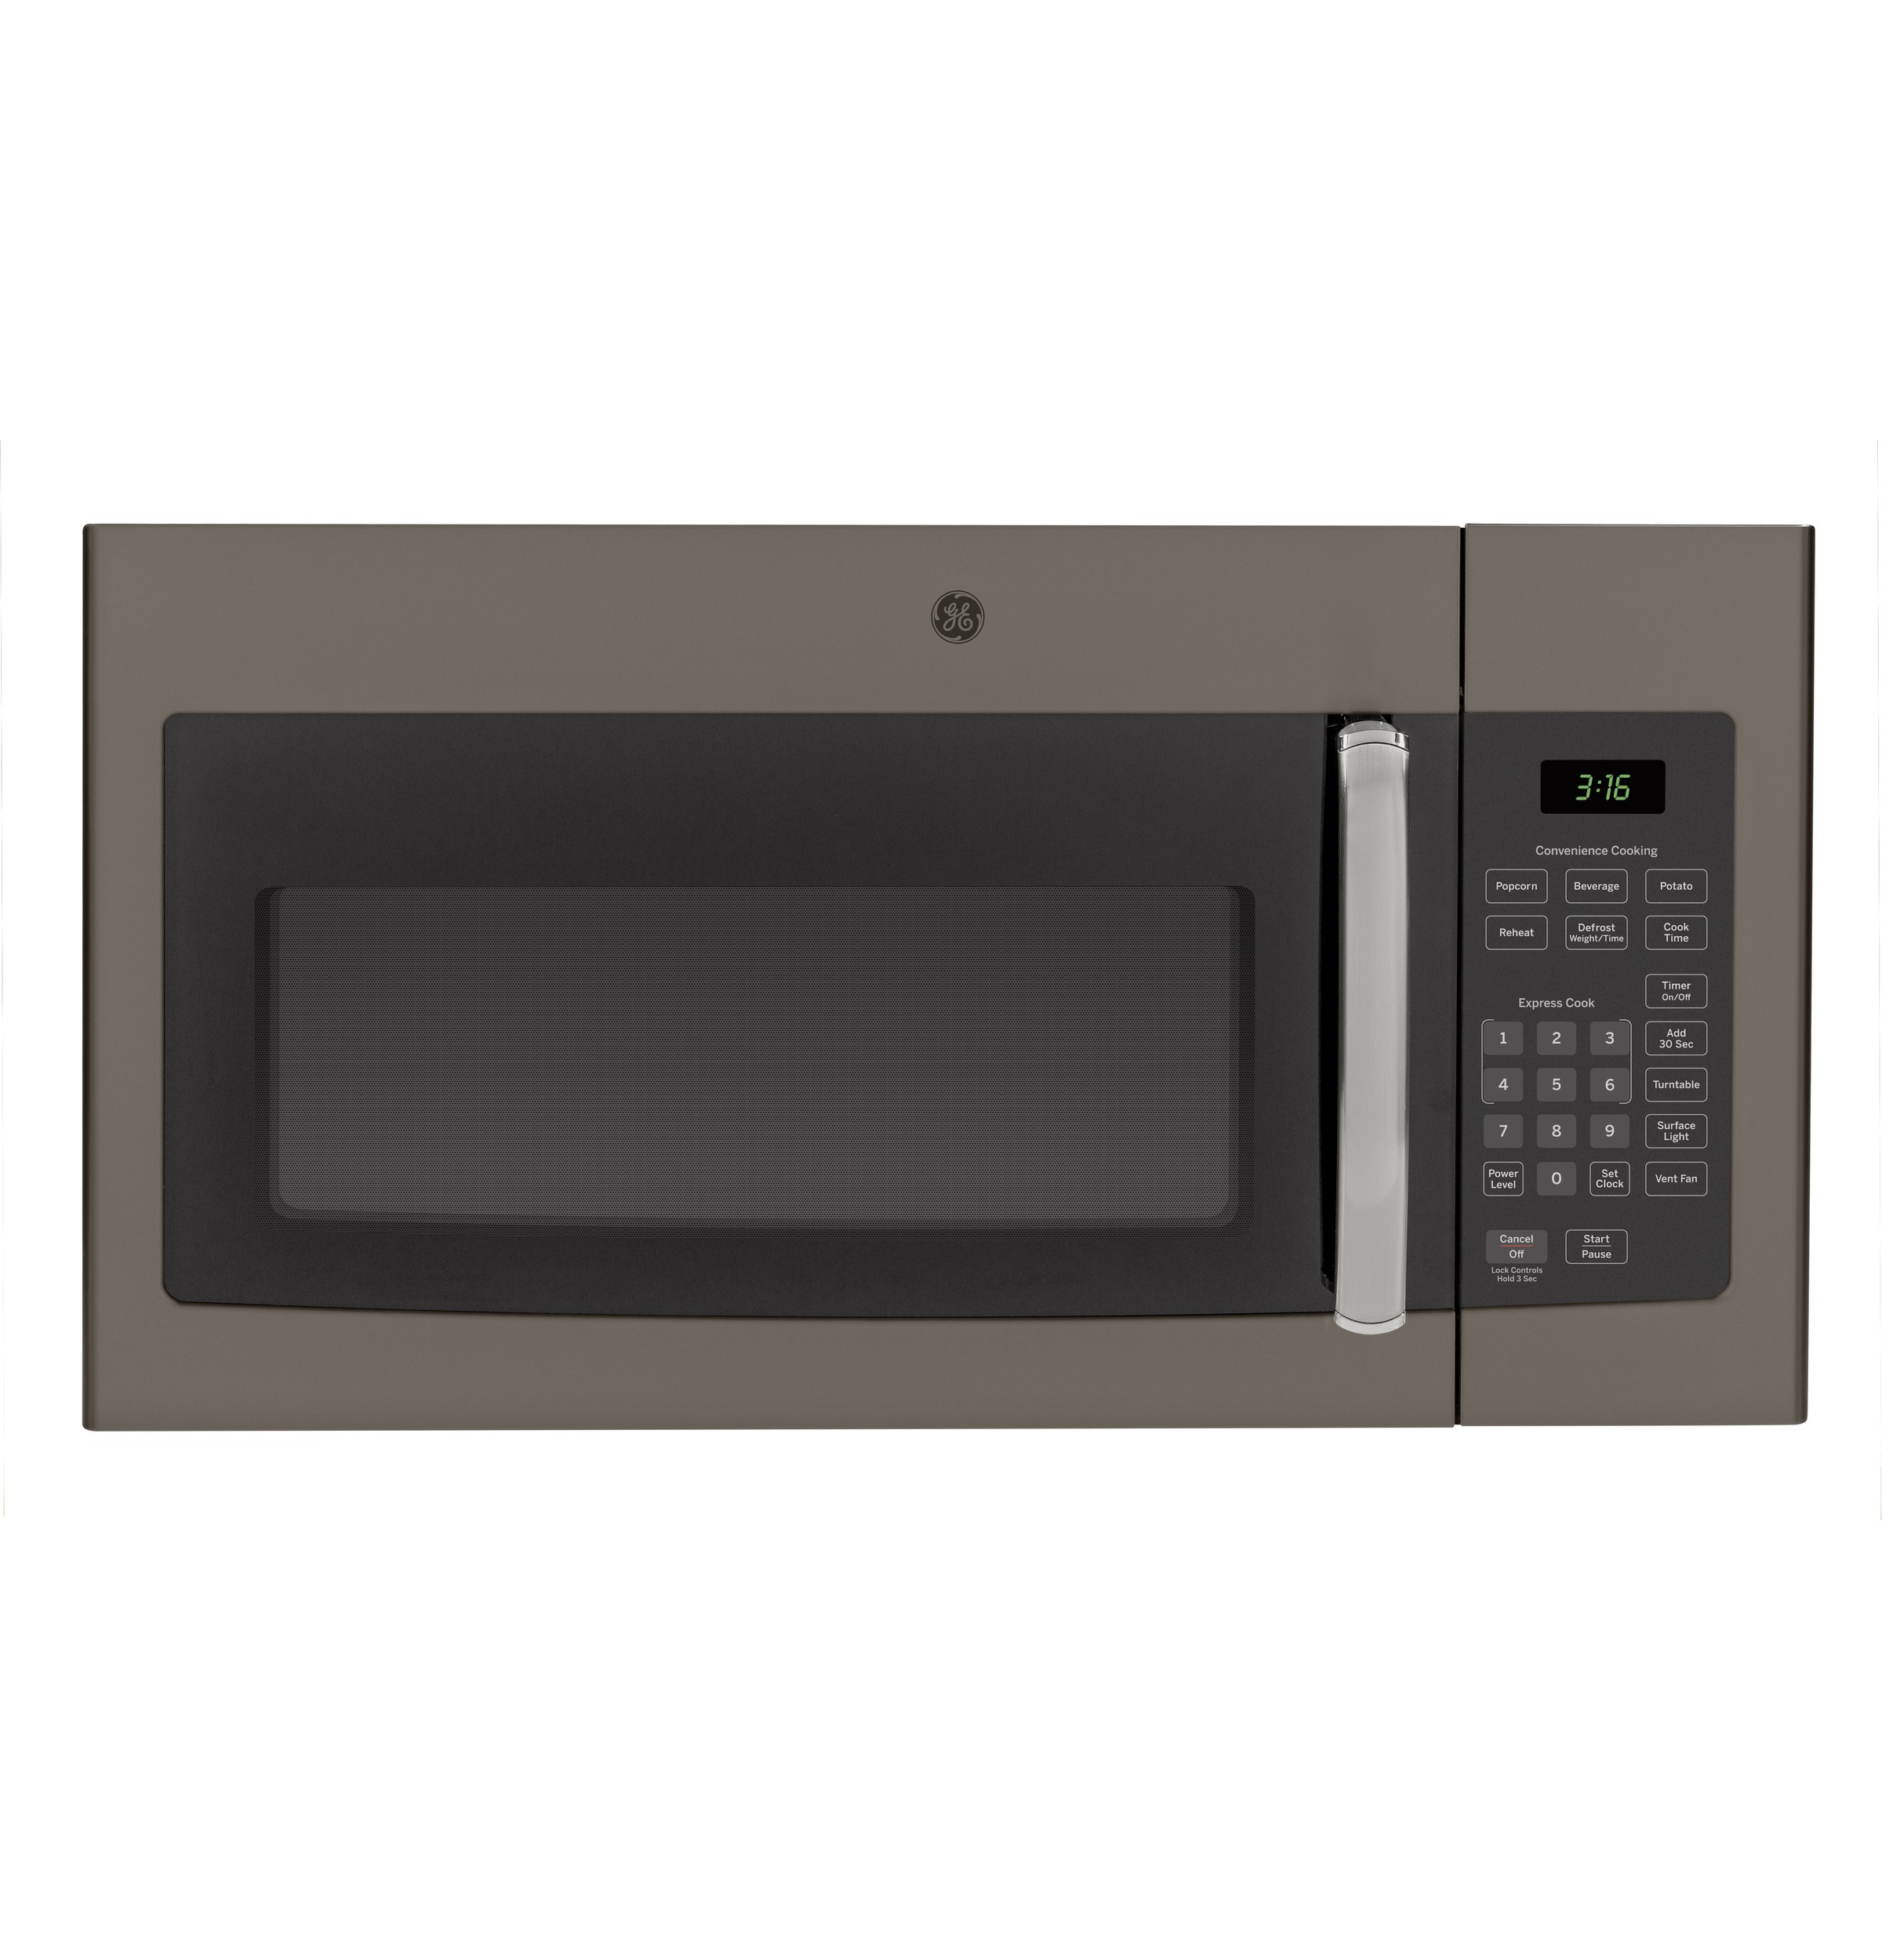 GE GE® 1.6 Cu. Ft. Over-the-Range Microwave Oven